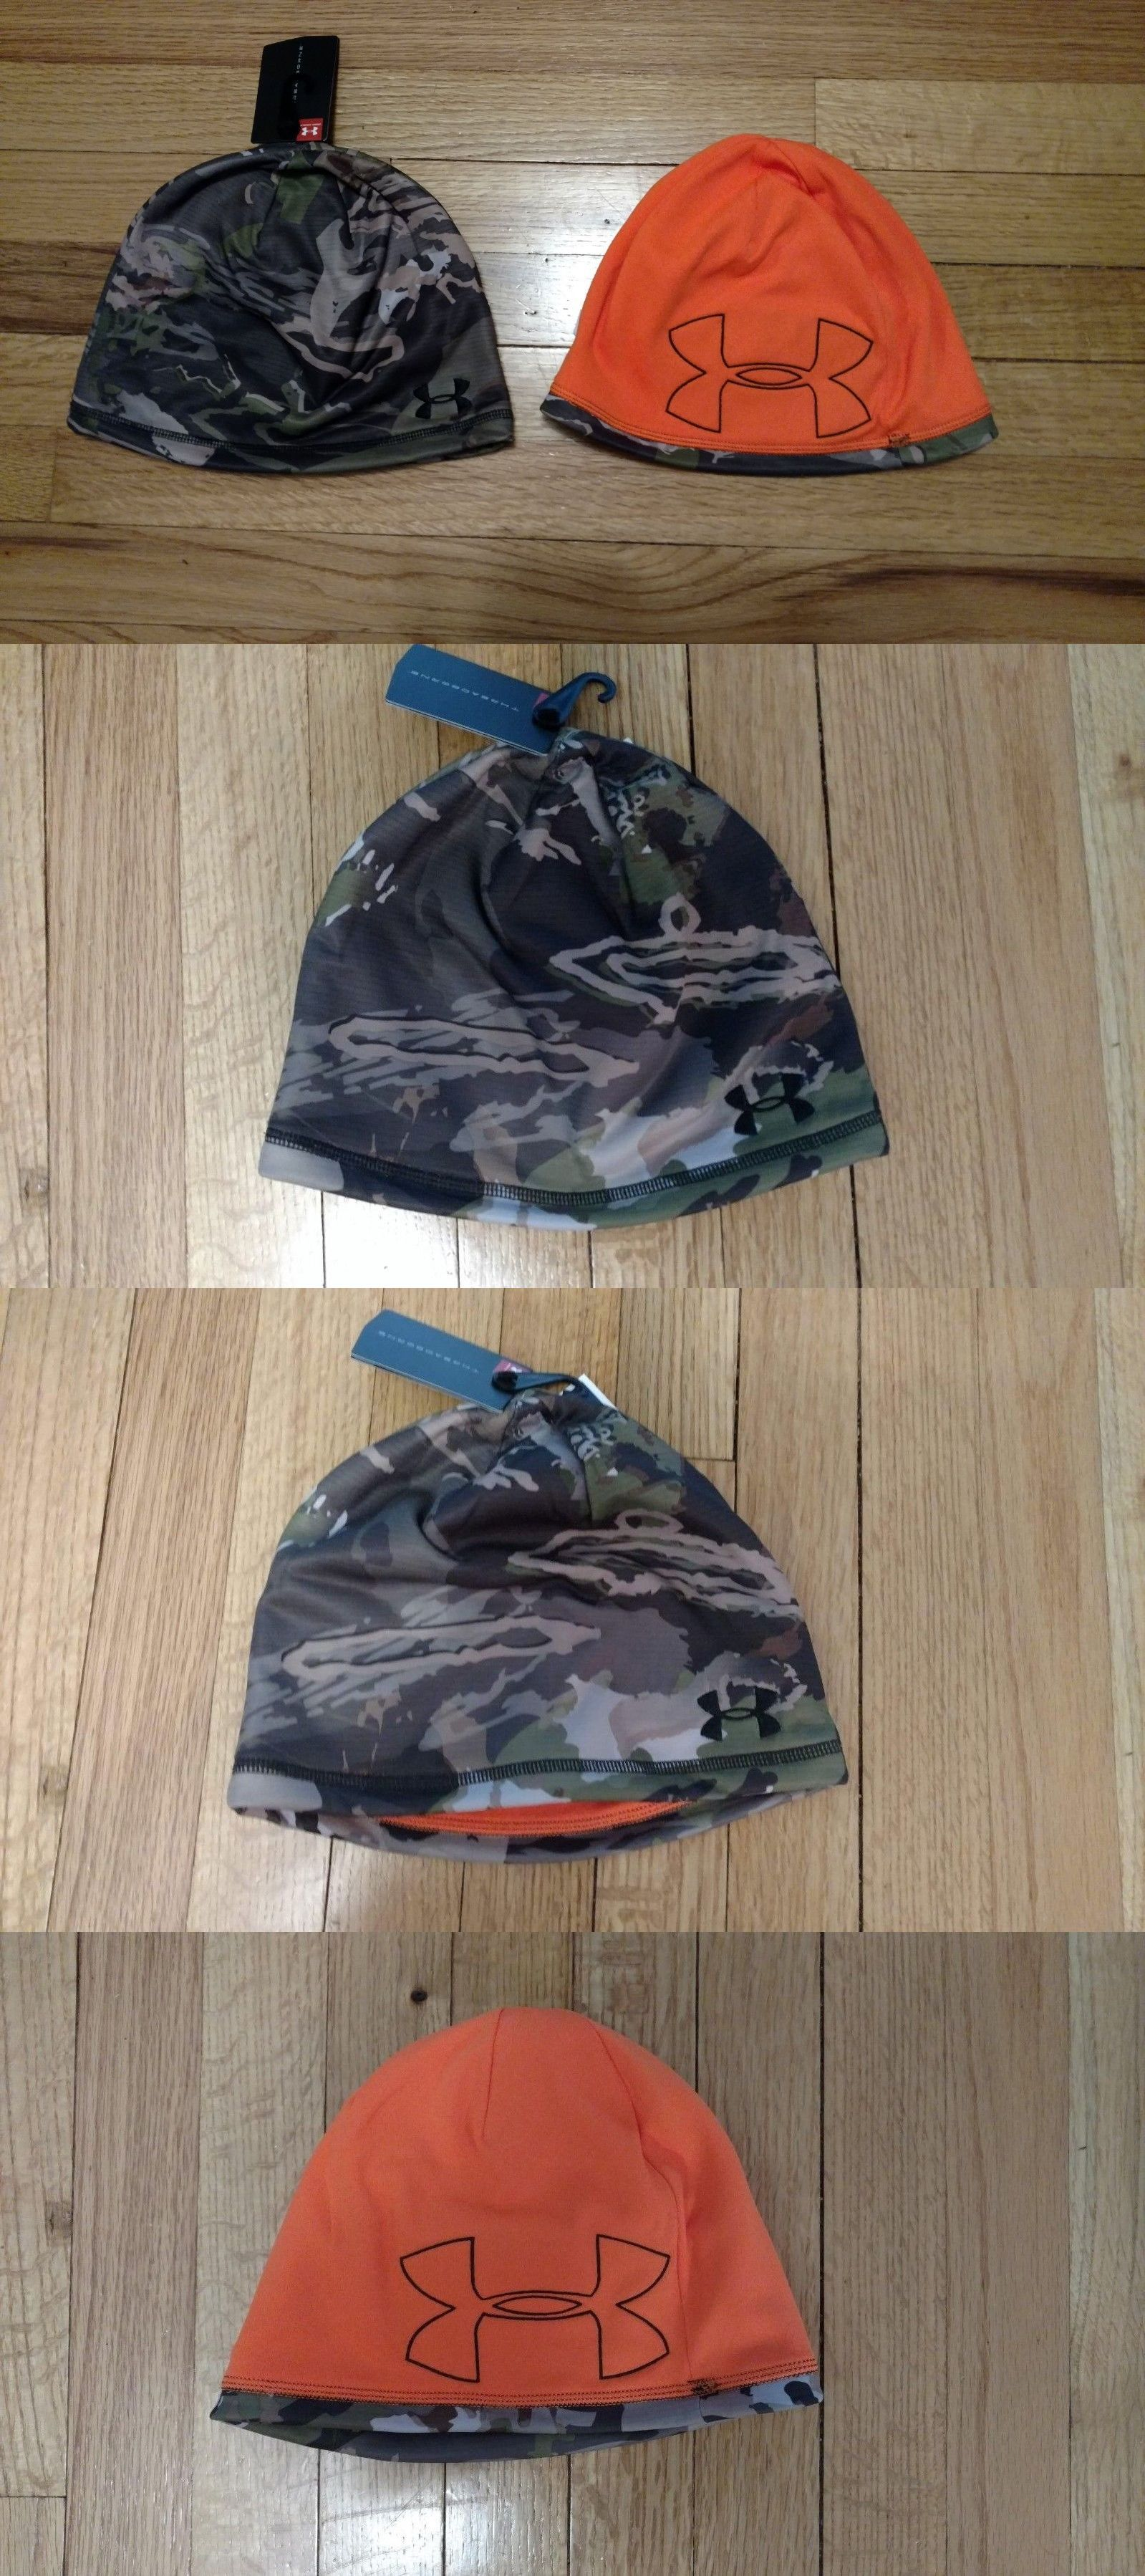 906ee2cf65e0c Clothing Shoes and Accessories 36239   34.99 Under Armour Mens Beanie Hat  Camo Orange Reversible Nwt